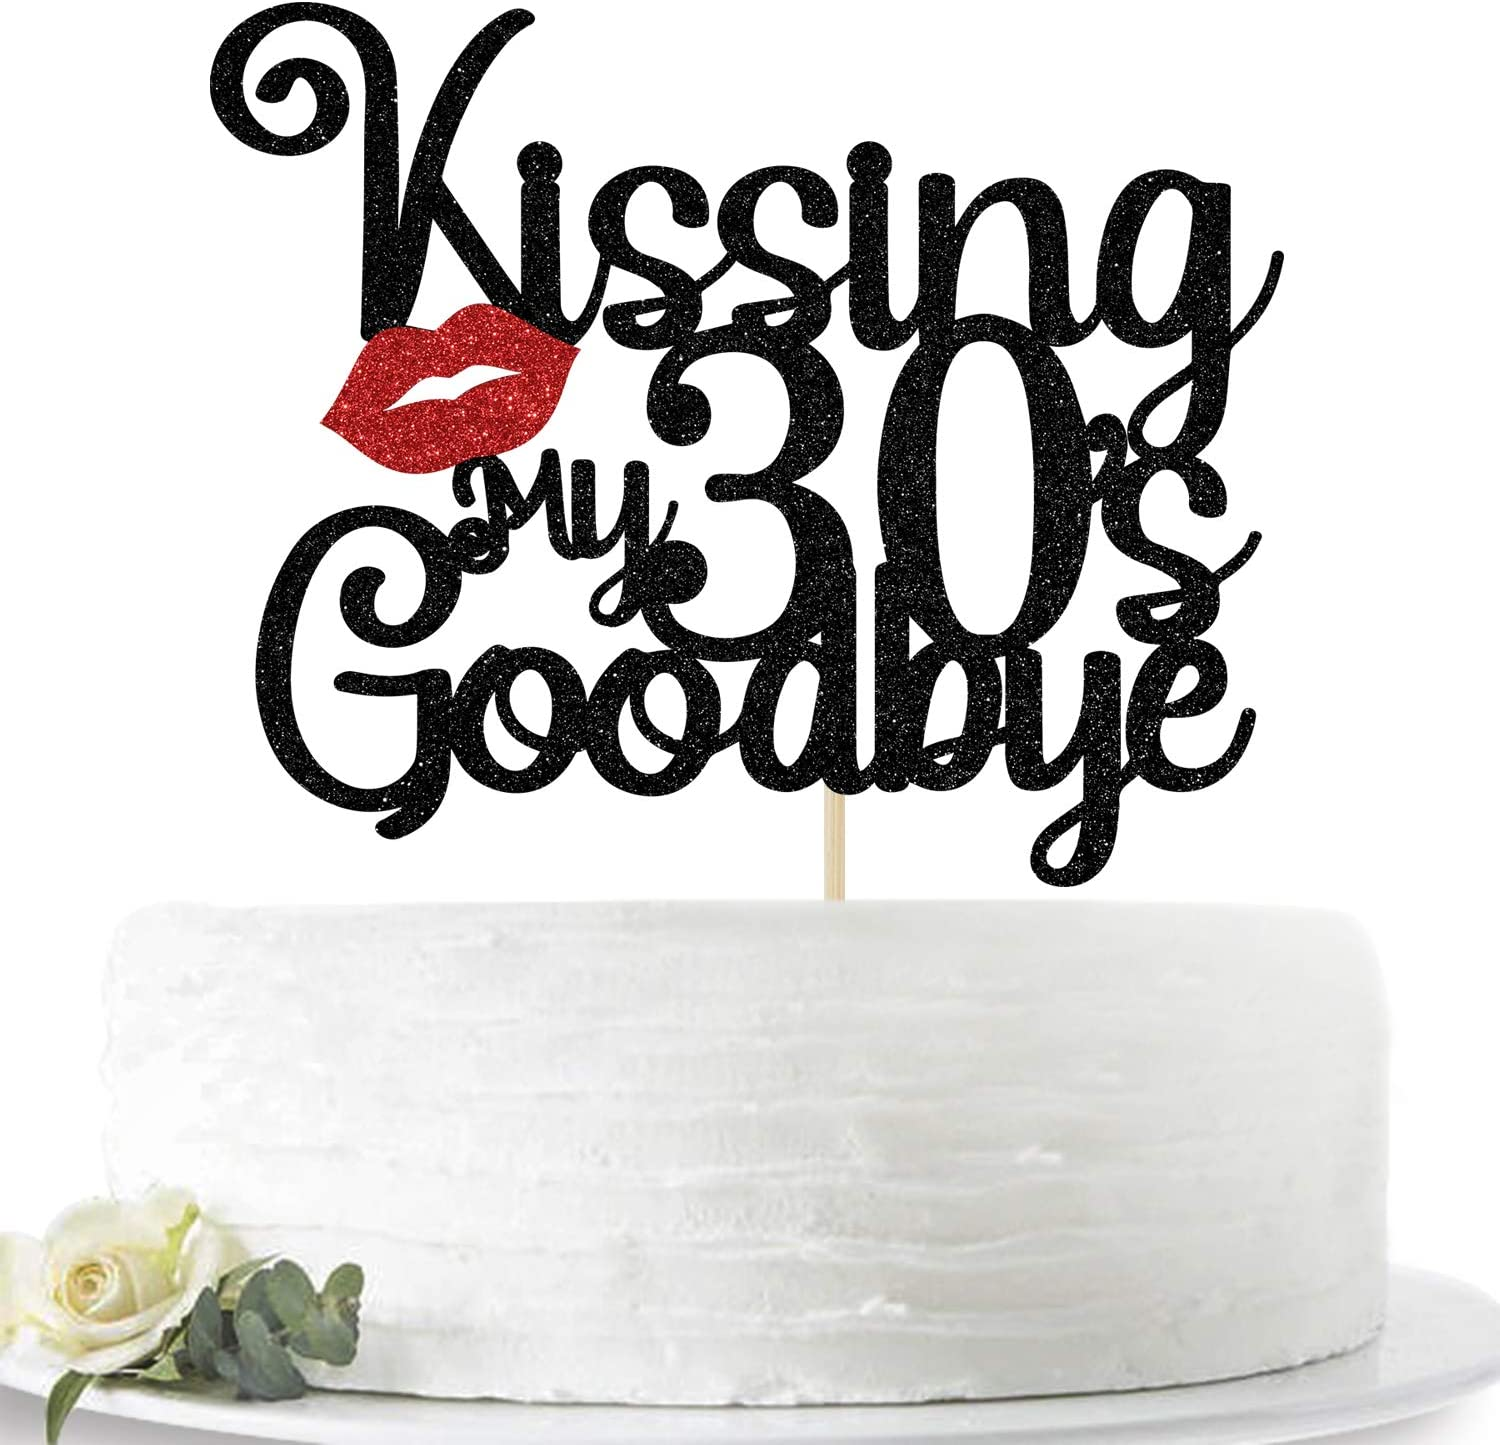 Glitter Kissing My 30's Goodbye Cake Topper, Happy 40th Birthday Cake Decor, Cheers to 40 Years, 40th Birthday Party Decoration Supplies(Black and Red)